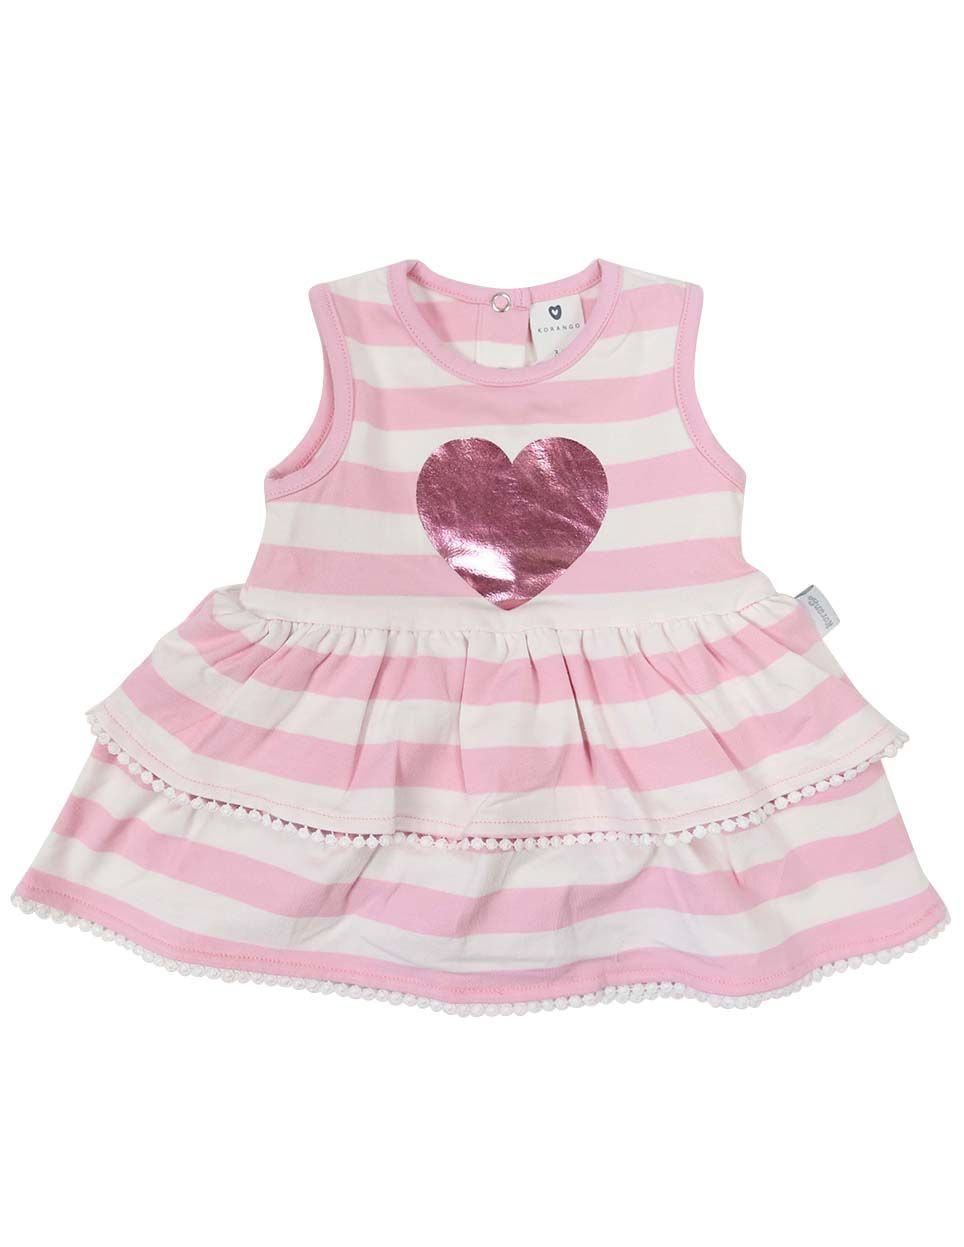 KORANGO Heart Dress in Pink